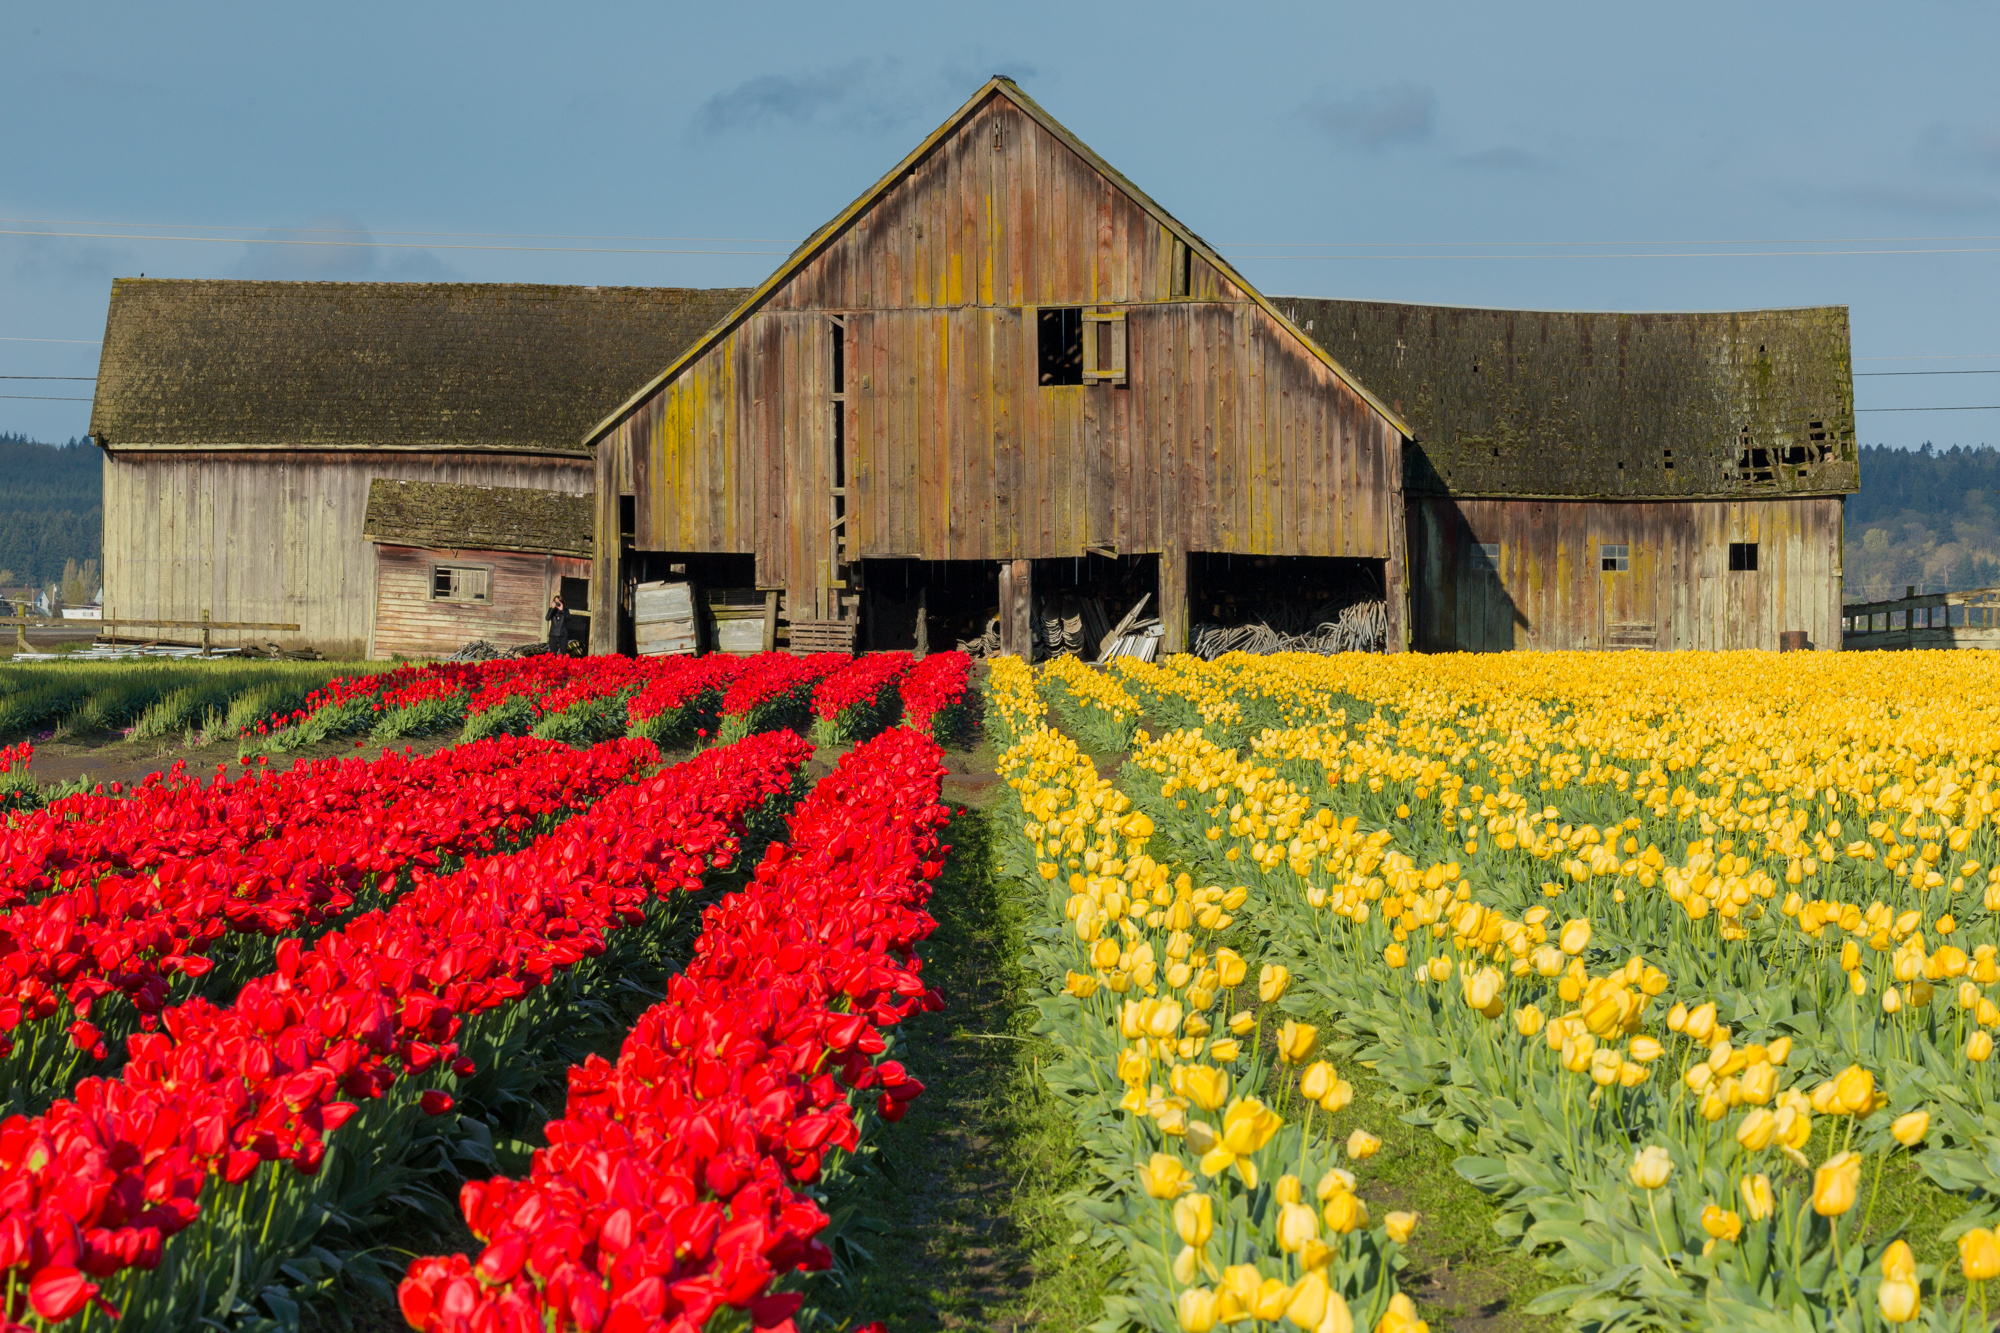 Tulip fields leading to a large barn